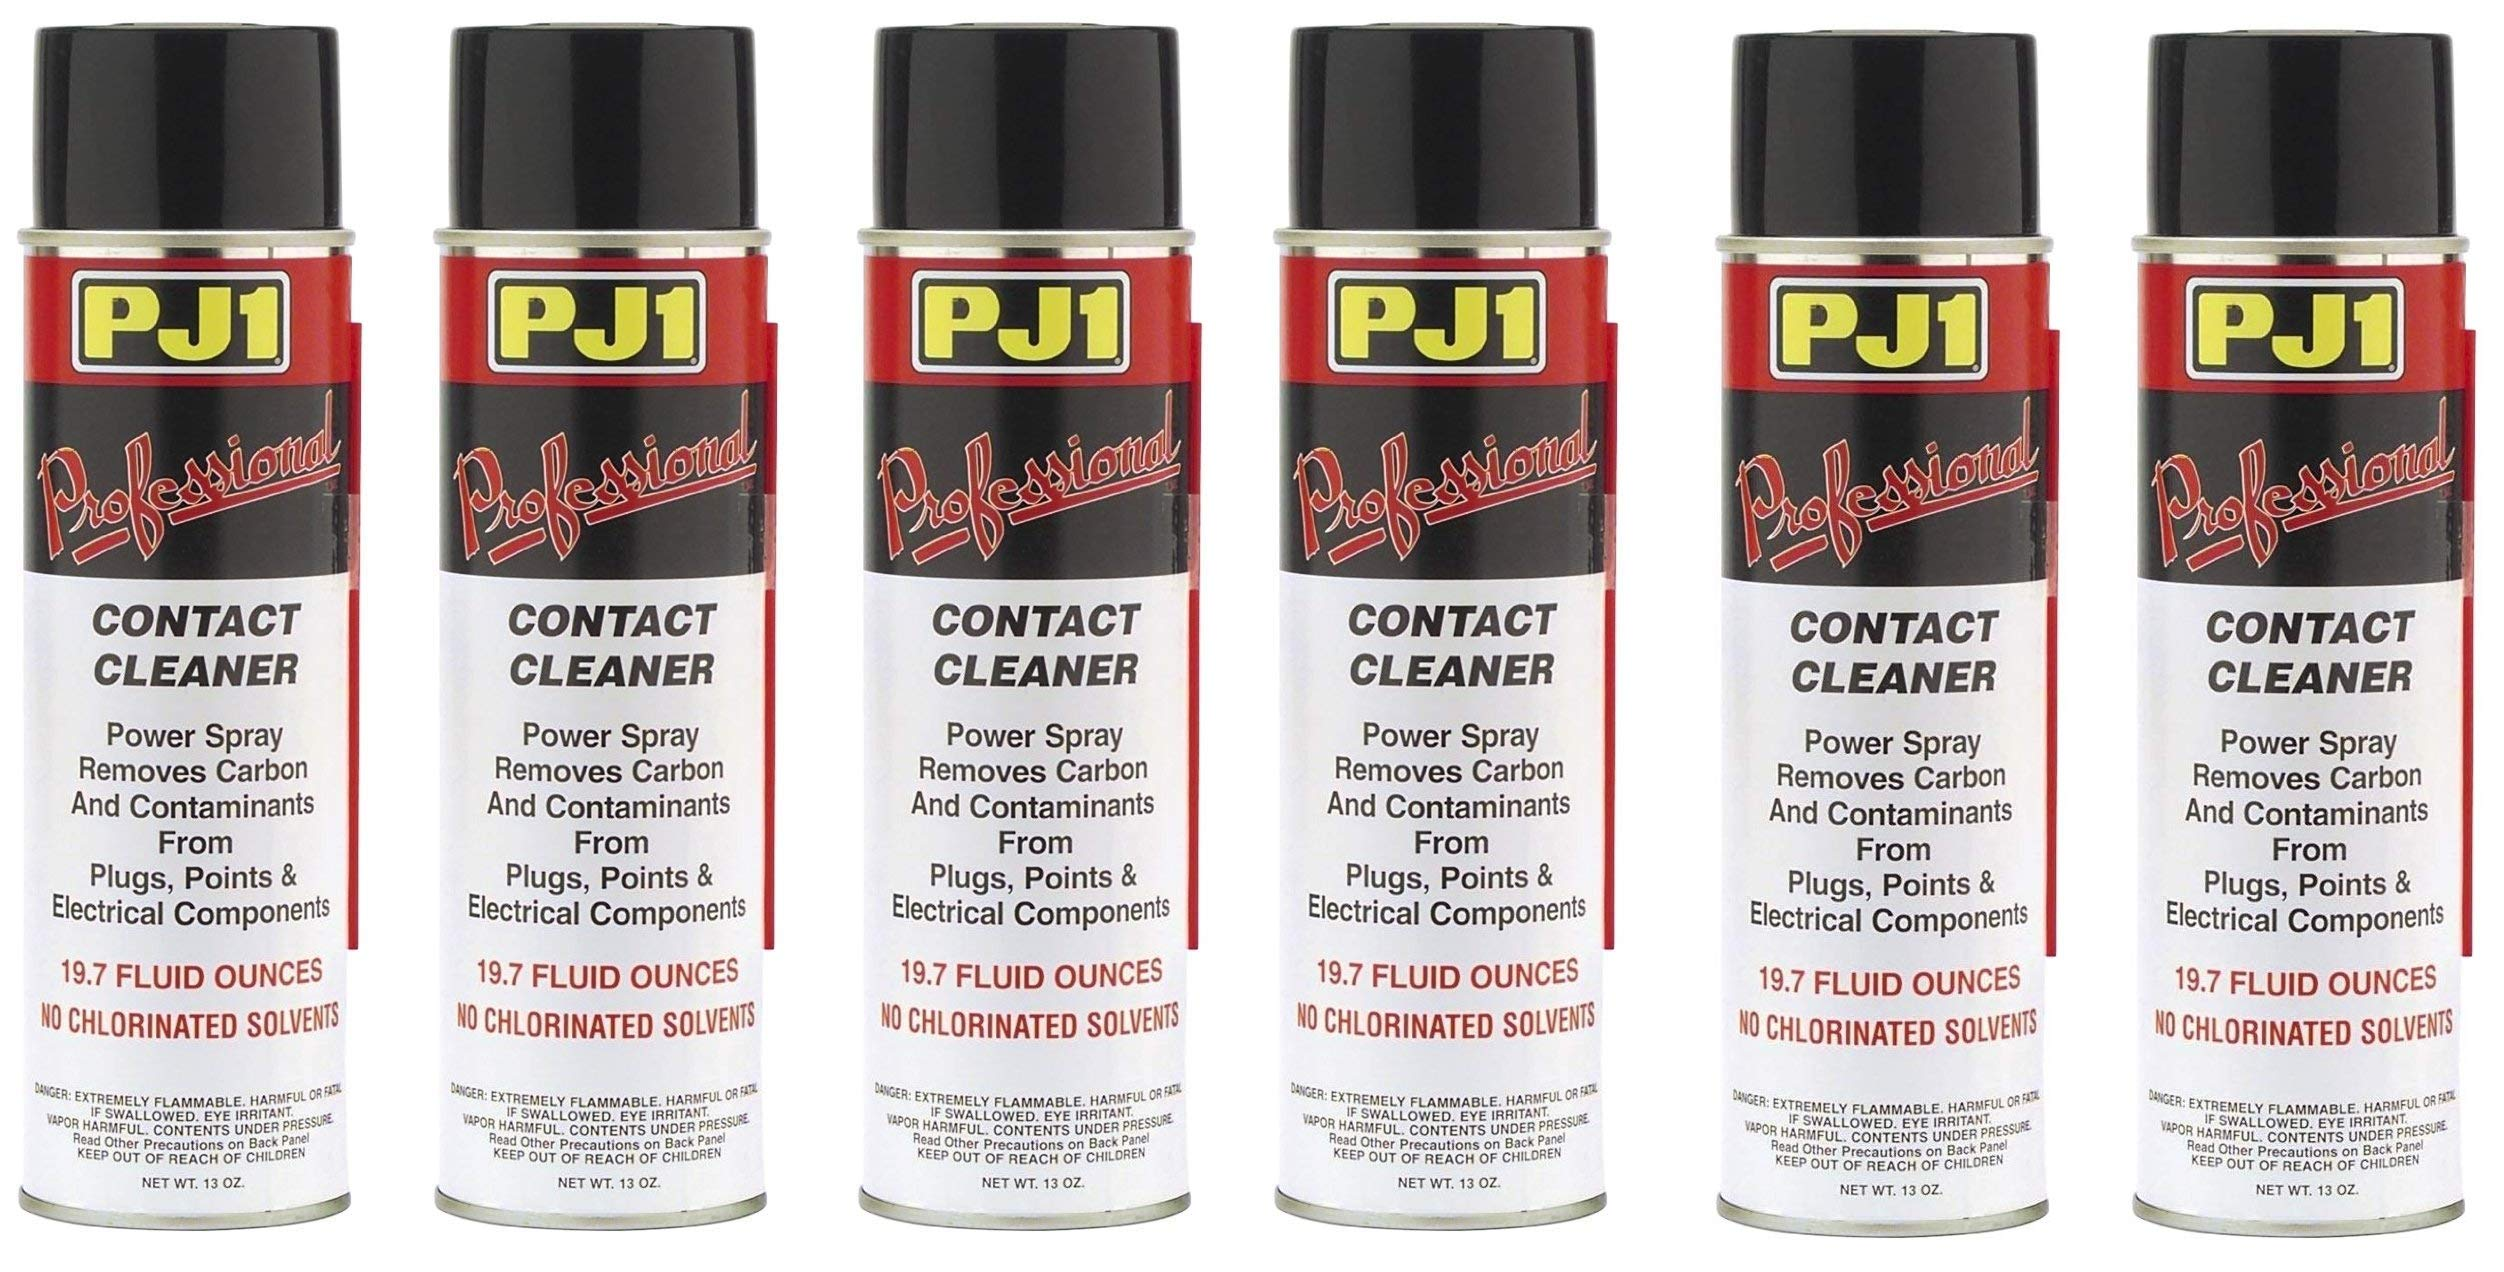 PJ1 40-3-1 Pro Contact Cleaner (Aerosol), 13 oz (13 oz (Pack of 6))